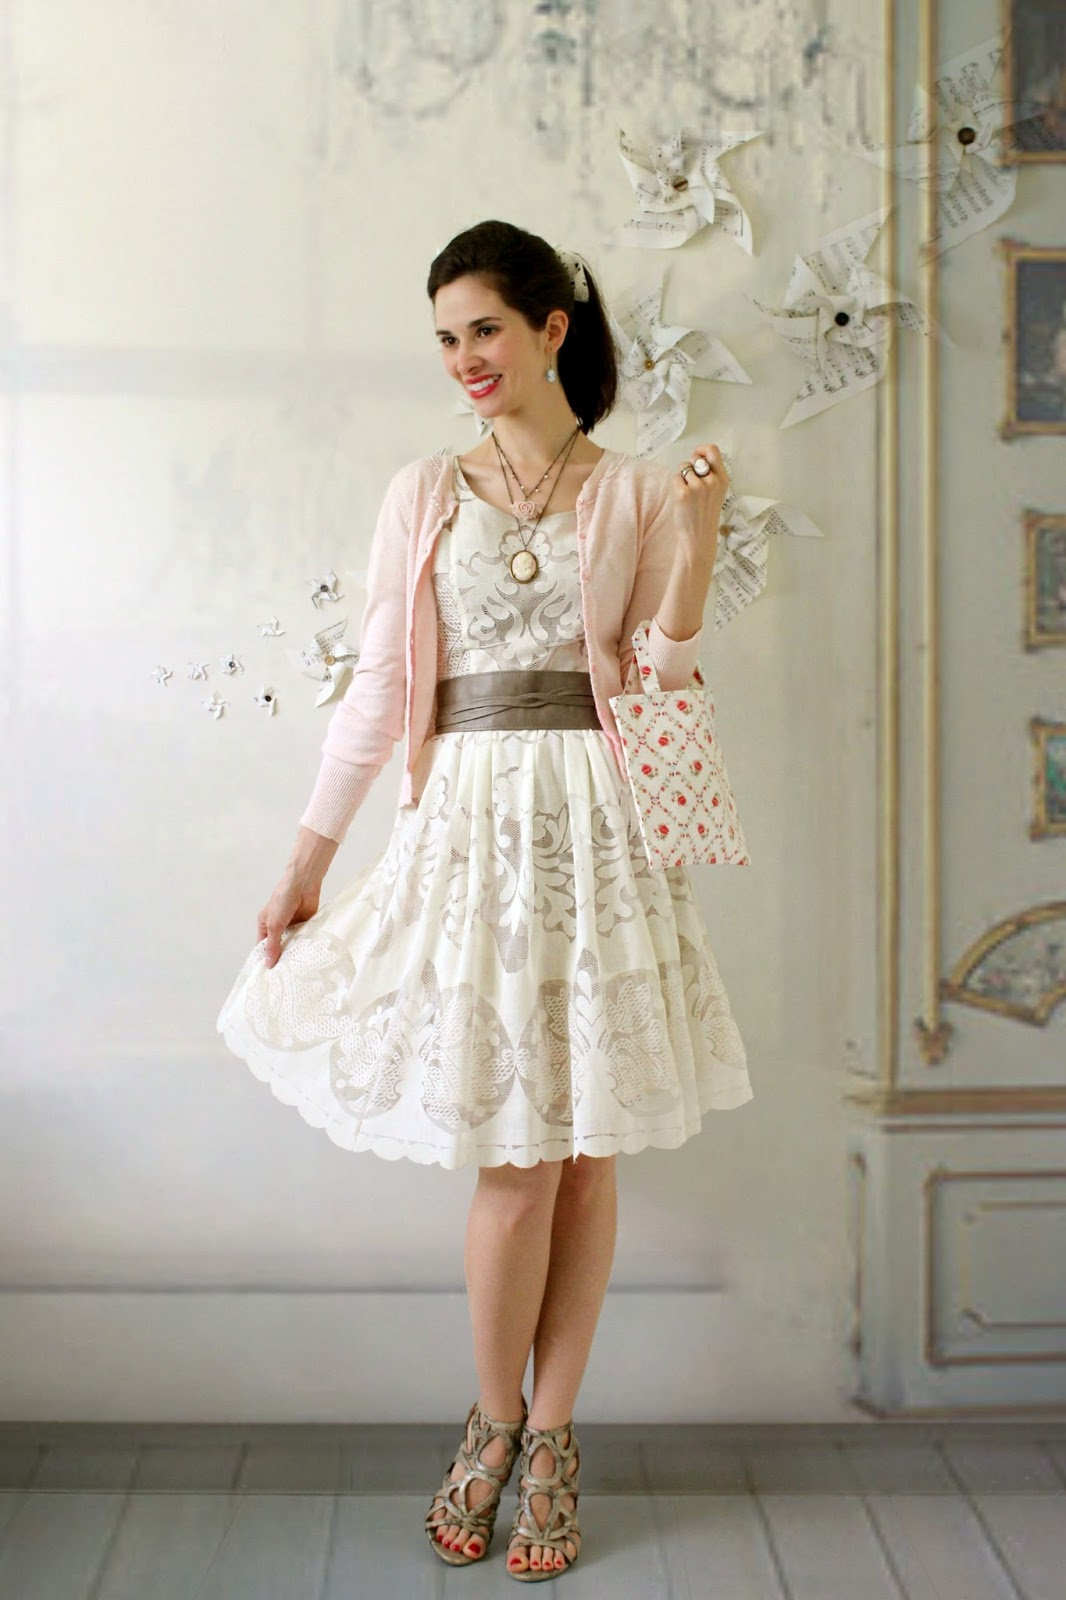 618fc4dffe54 I started with my Ivoire lace dress by Tracy Reese and a pink beaded  cardigan. Even though these two pieces are both solids, the lace provides  texture and ...